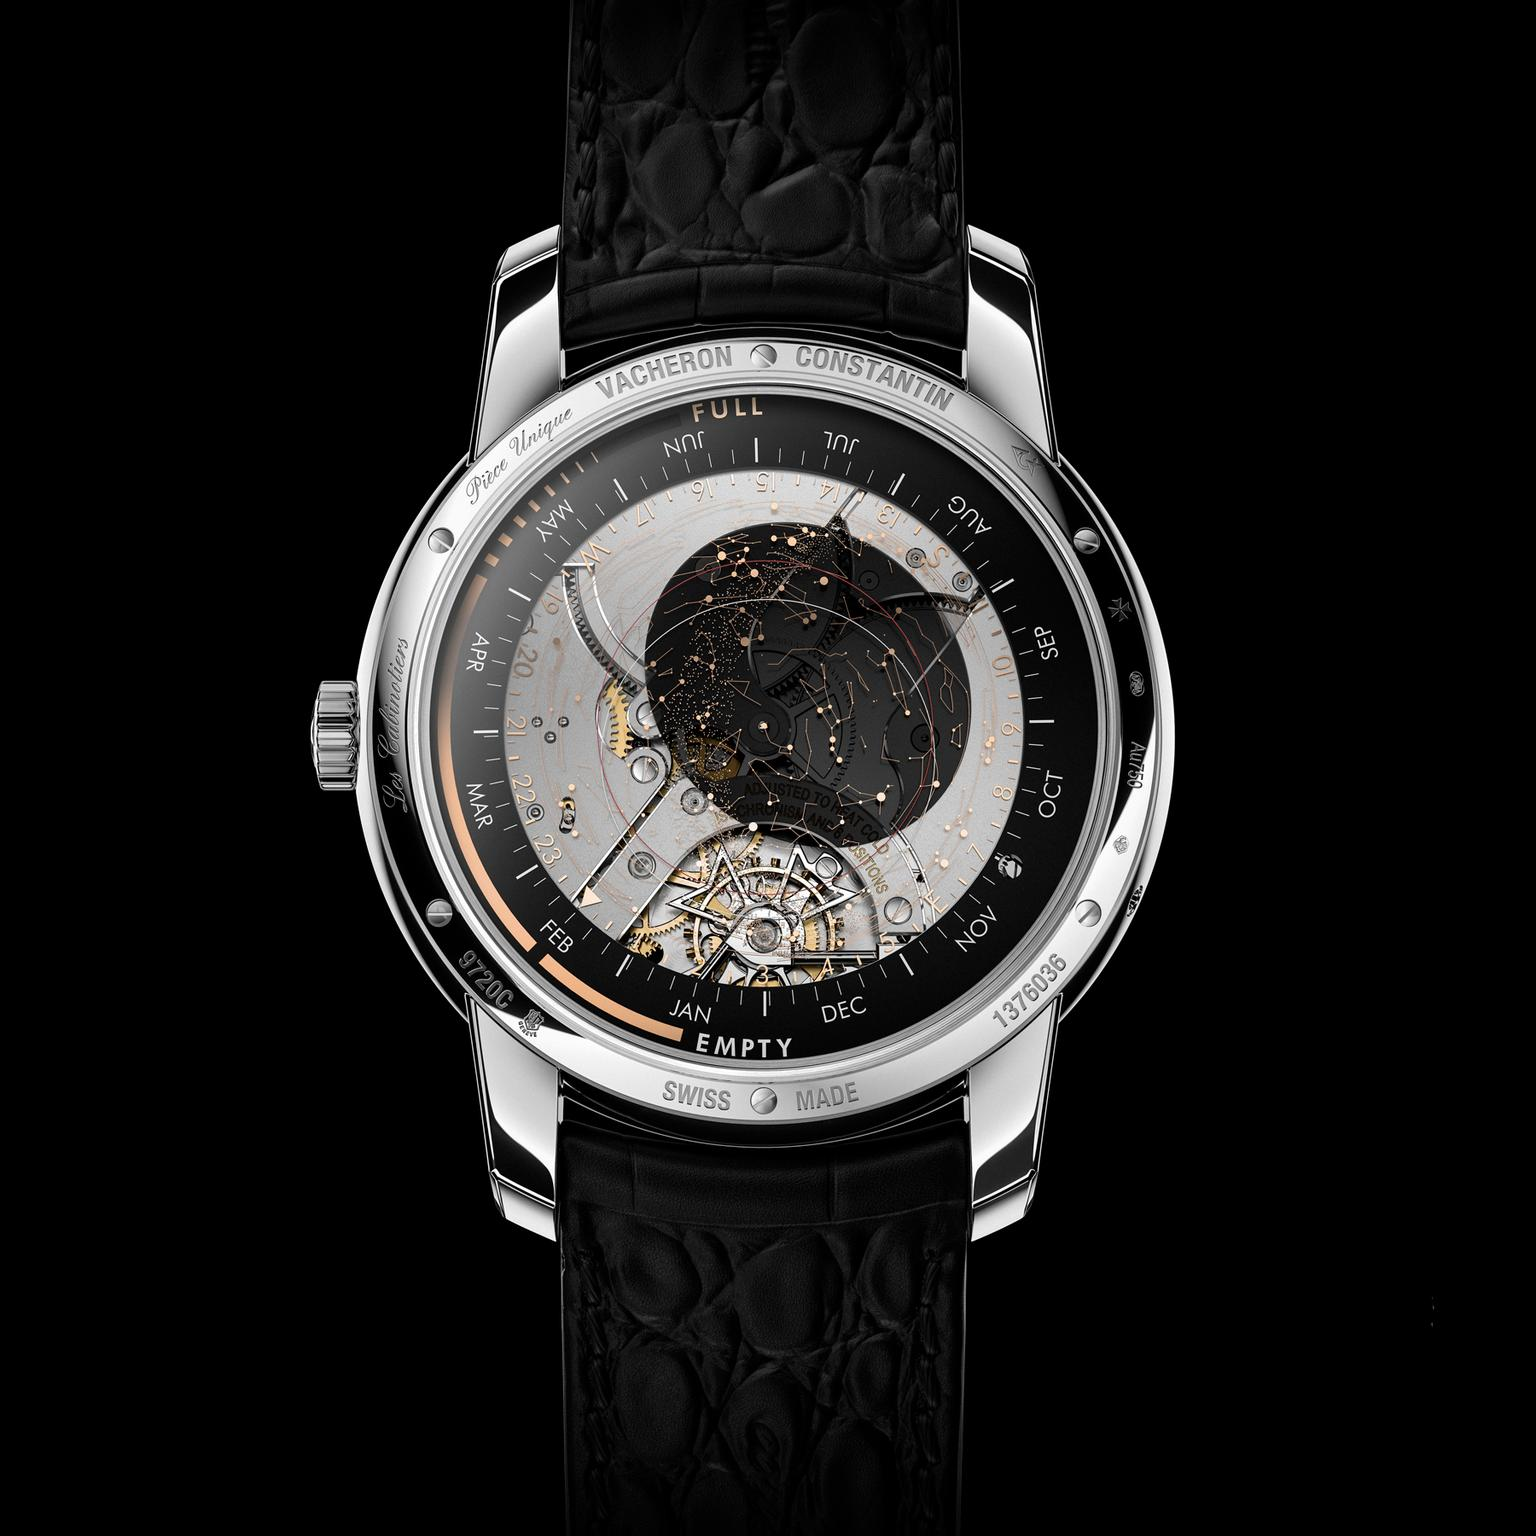 Vacheron Constantin Celestia watch back